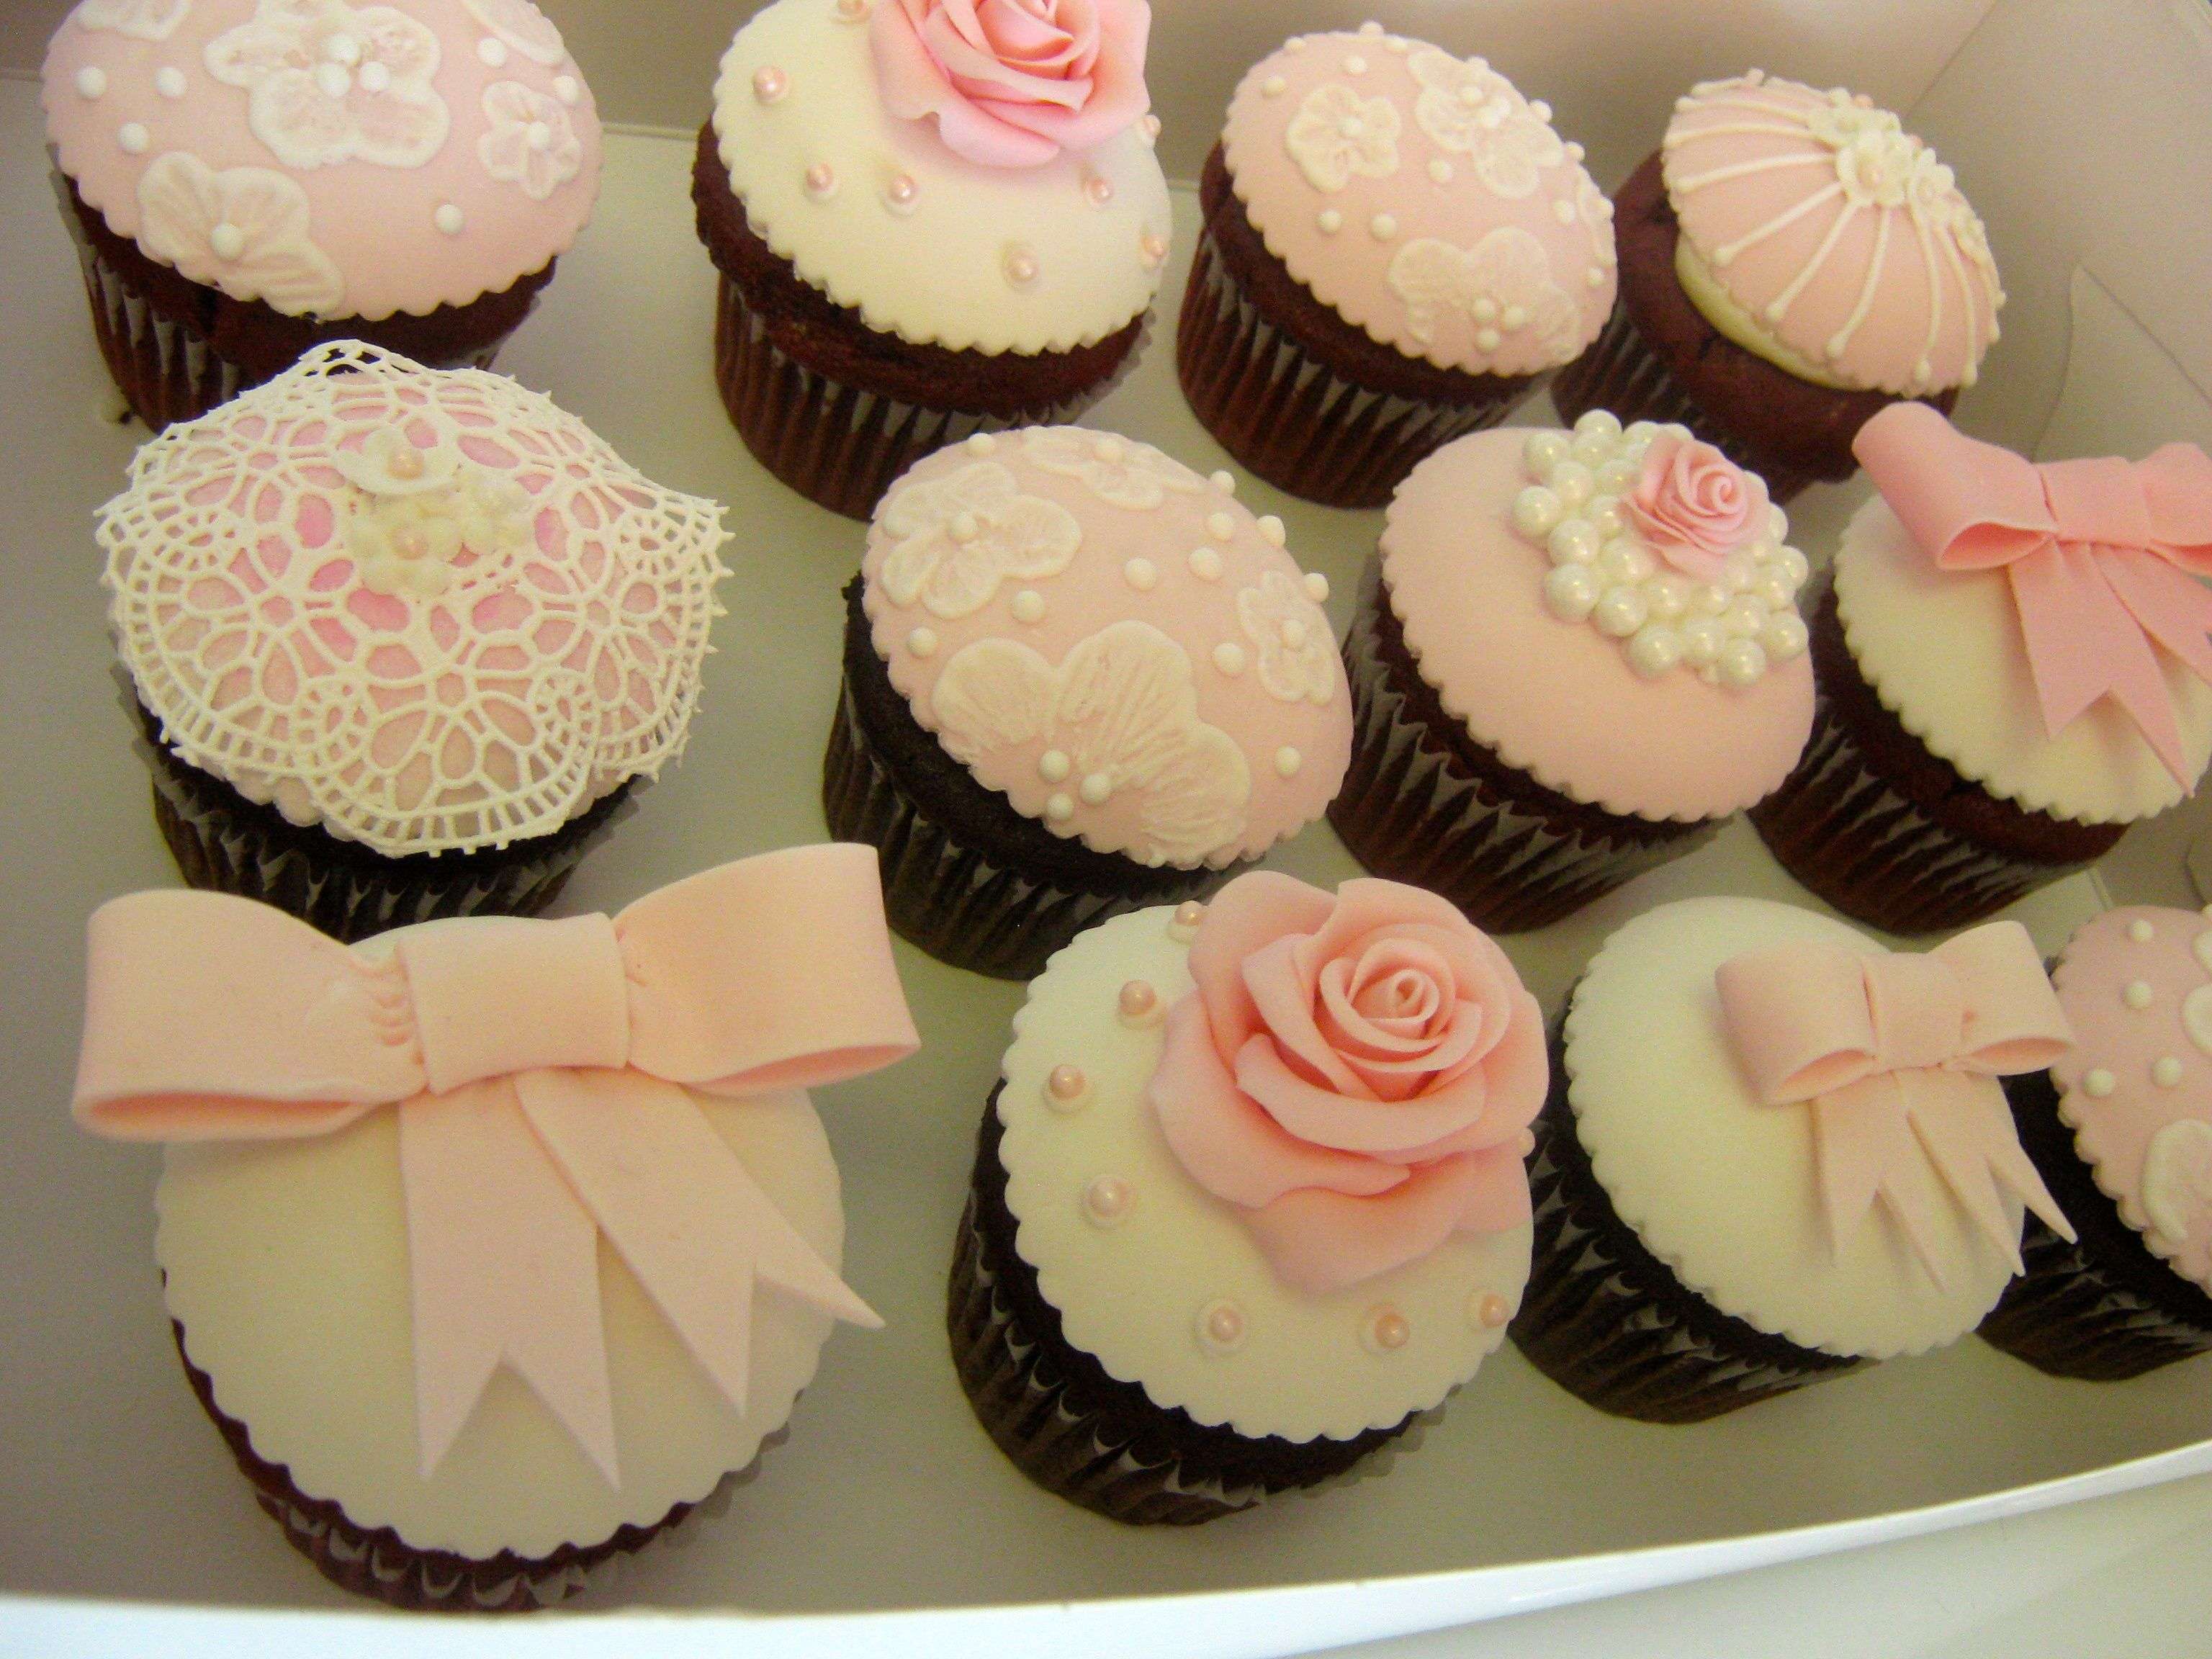 Vintage-style fondant cupcake toppers for an elegant baby shower. Take a  look at the edible lace - it's fantastic!